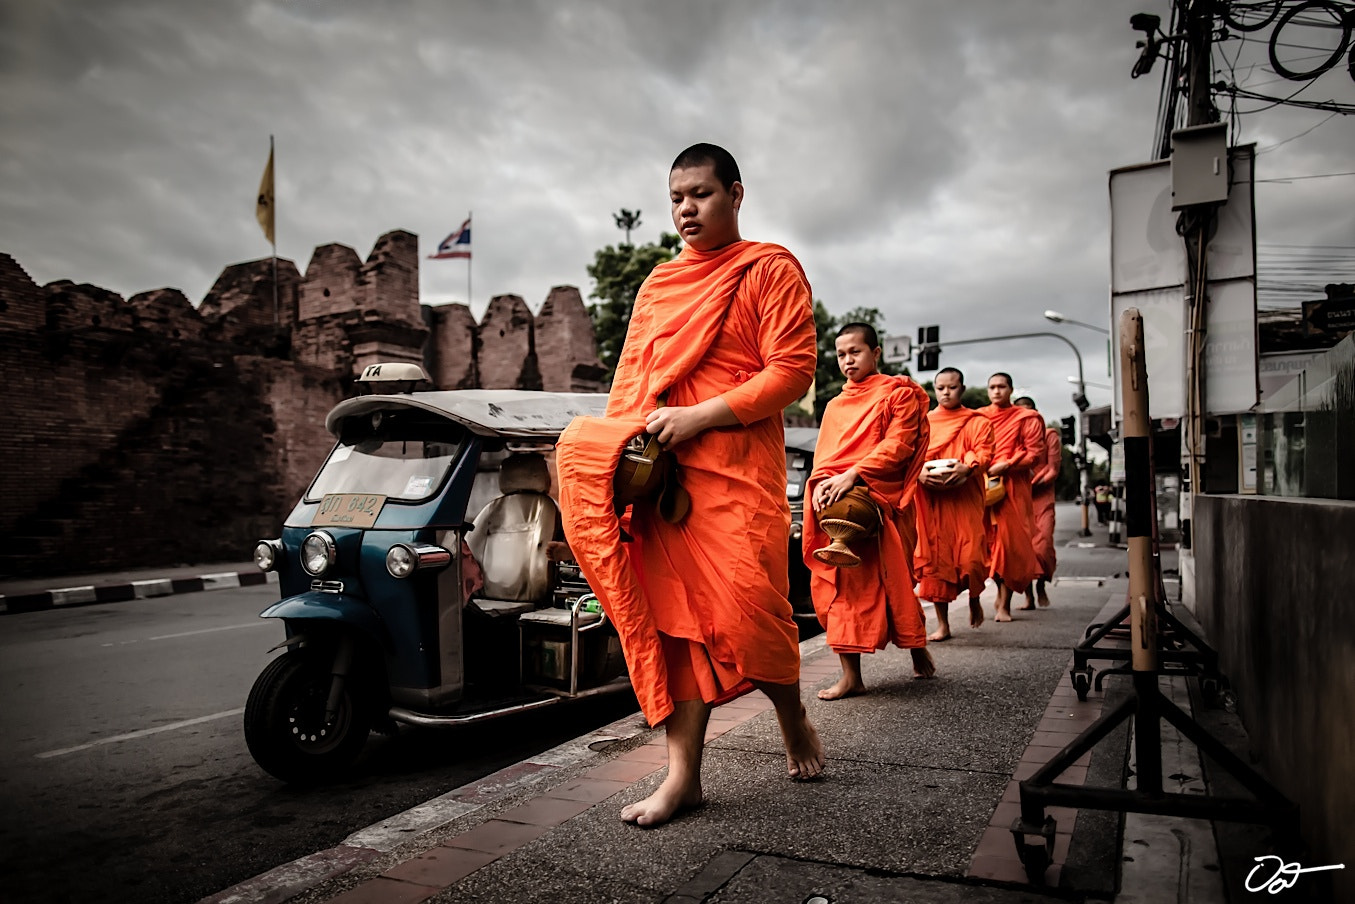 Photograph Monks Morning Alms by Oat Vaiyaboon on 500px